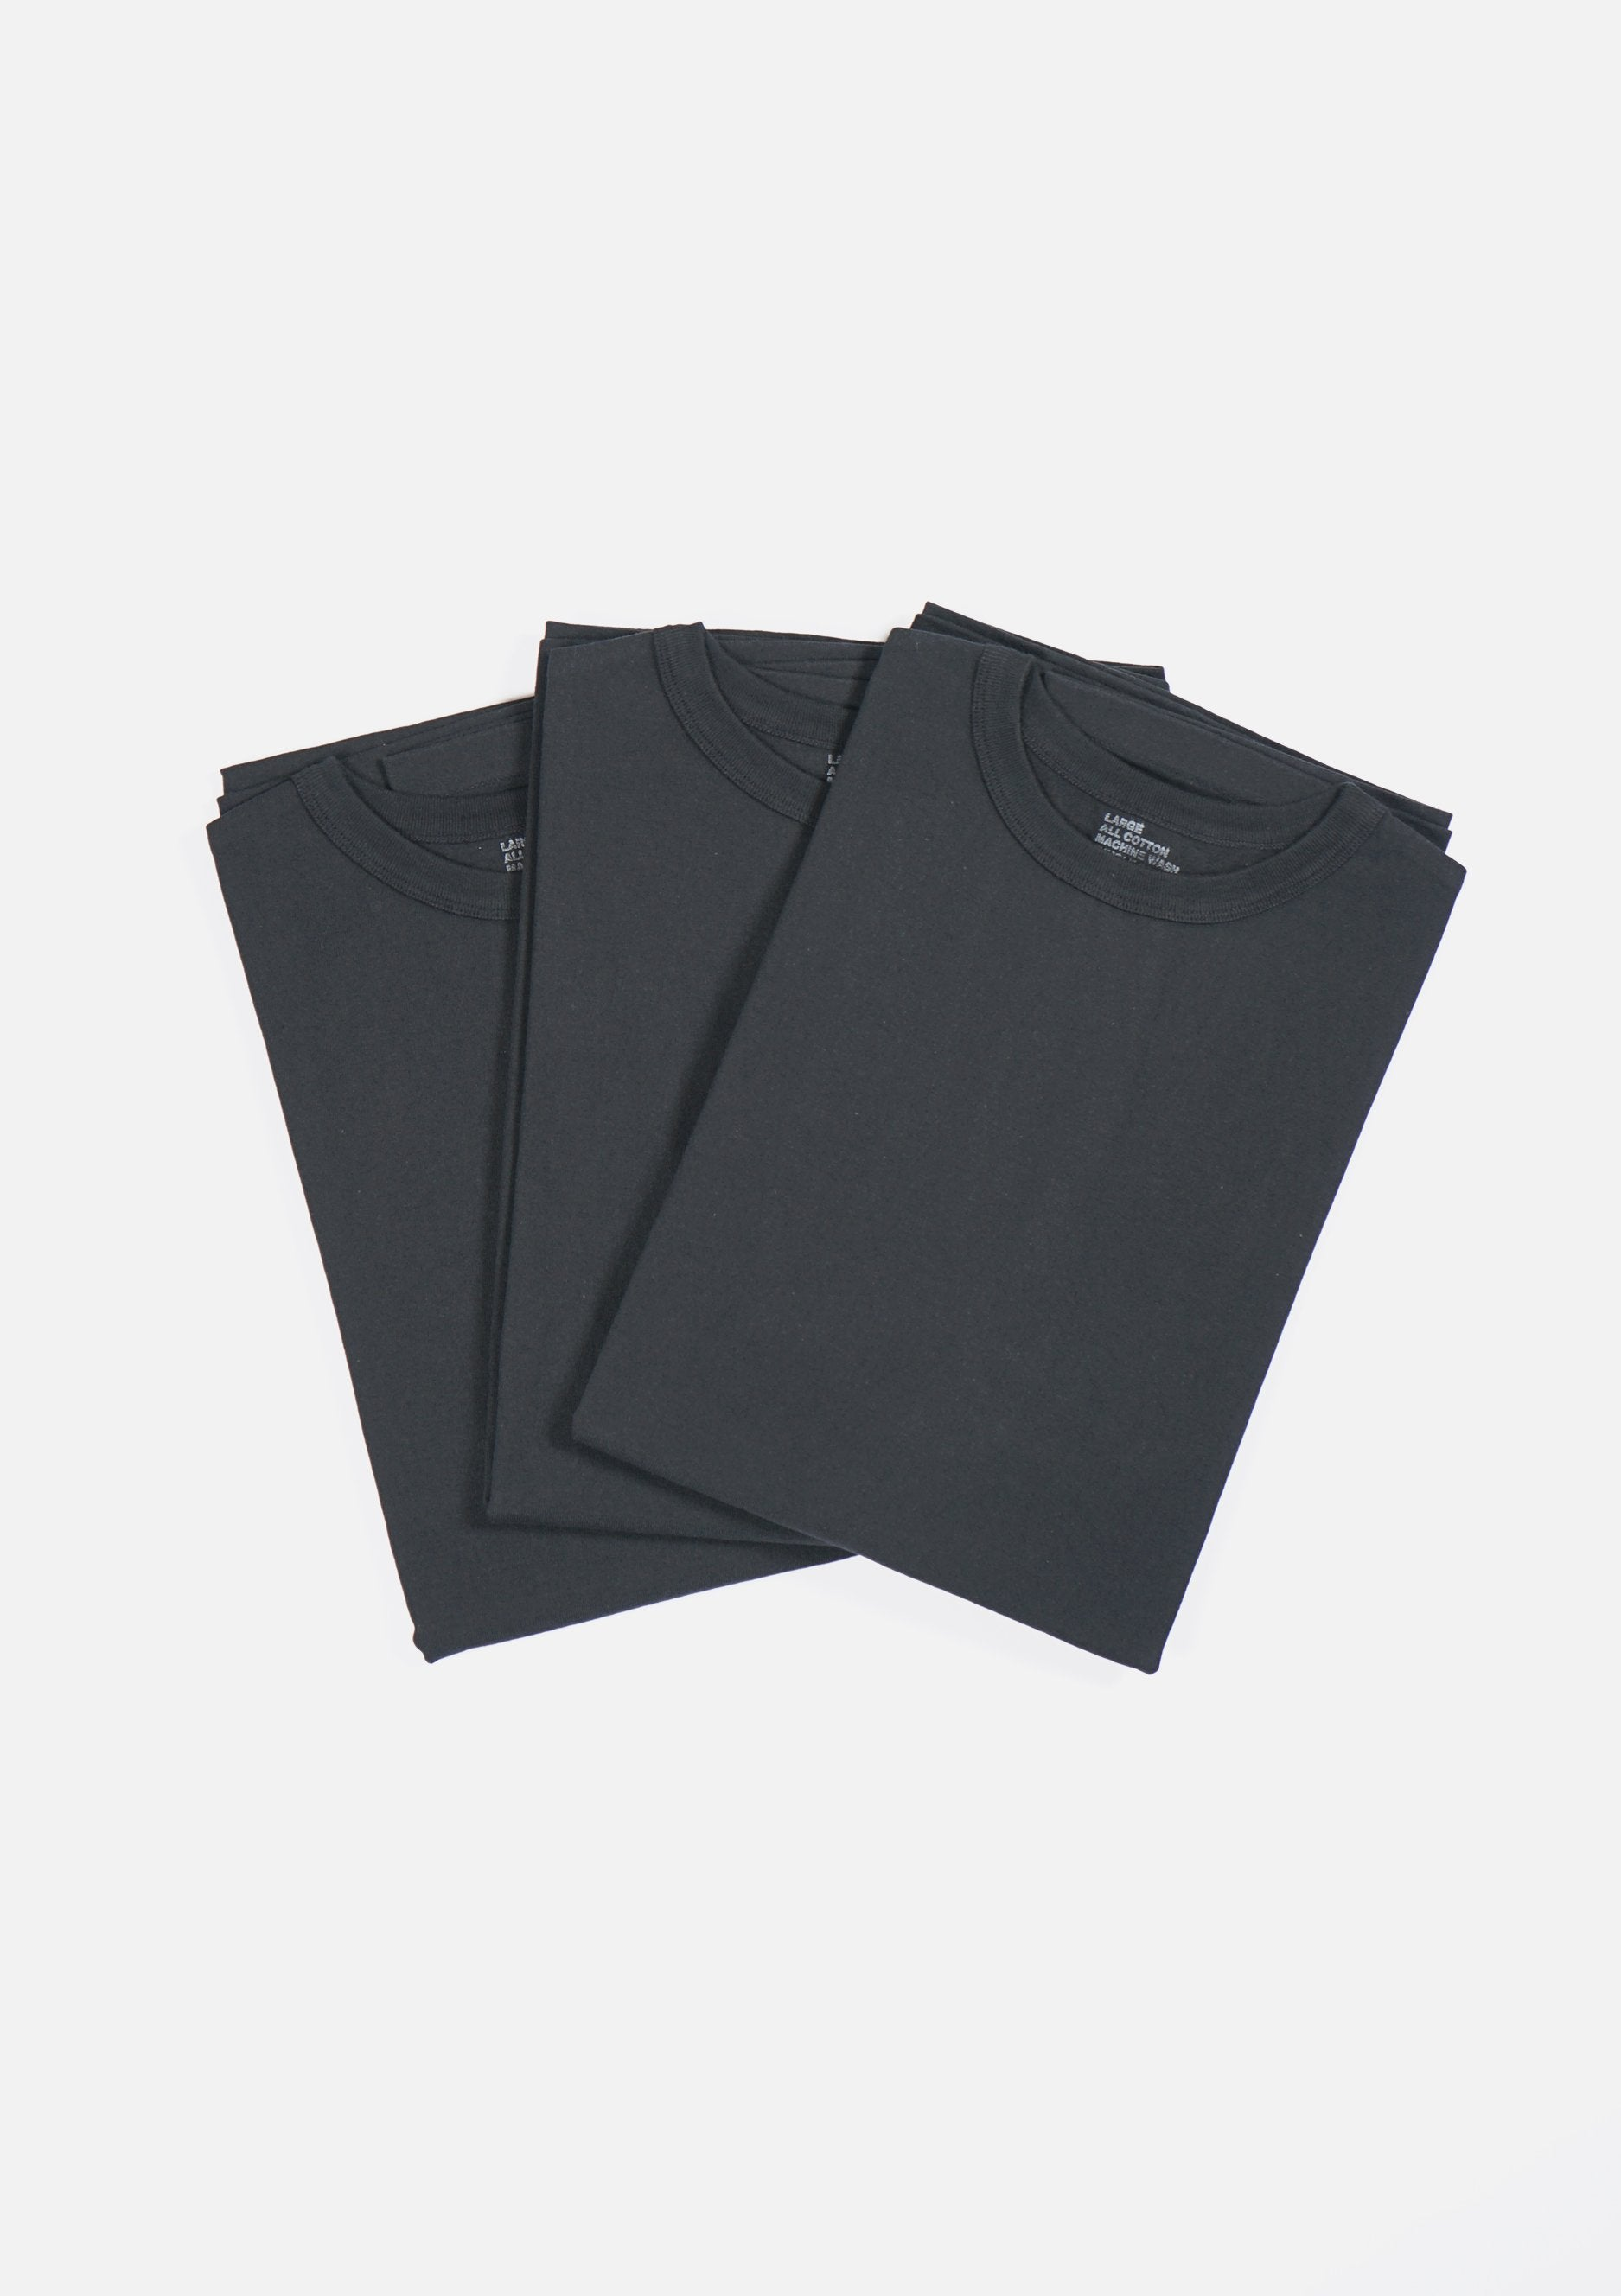 3-Pack Heavyweight T-shirts Black (You Save 10%)